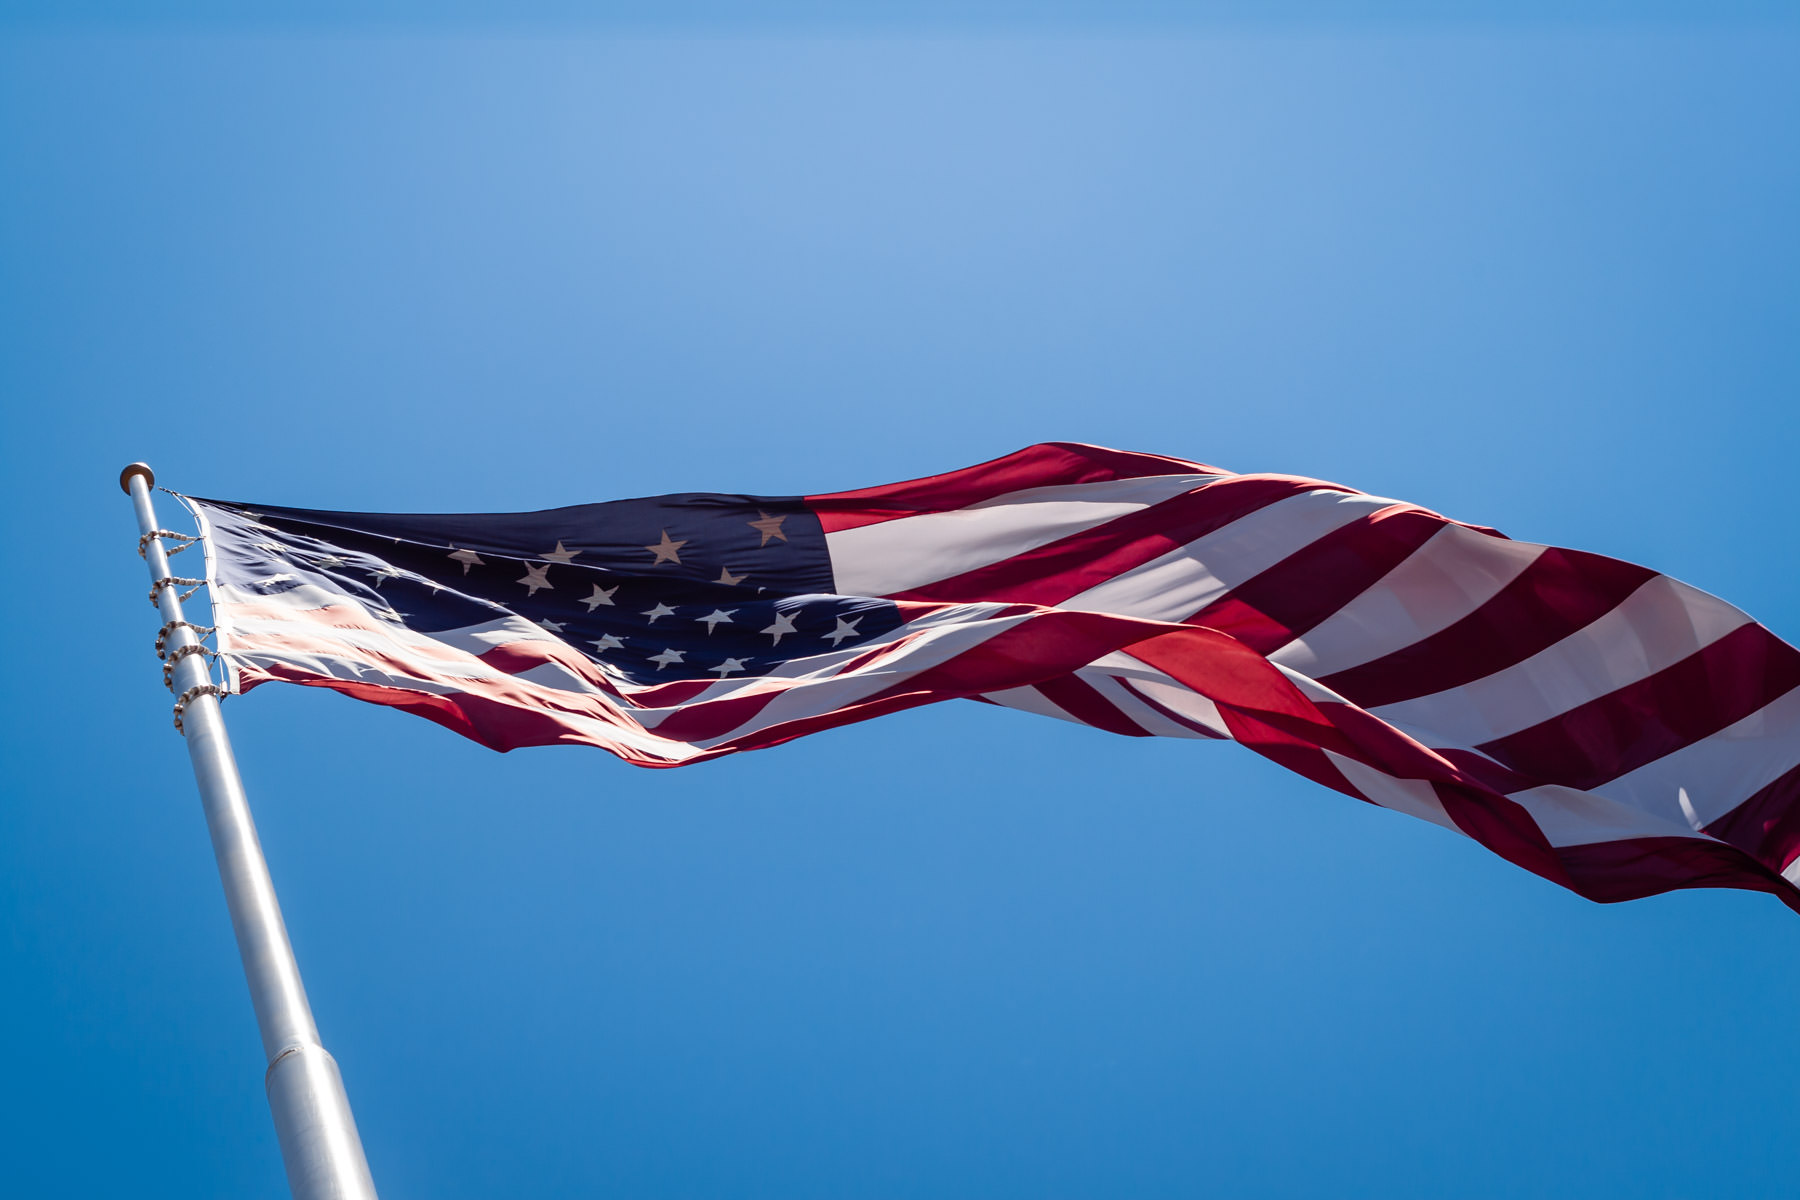 An American flag flies over Plano, Texas.